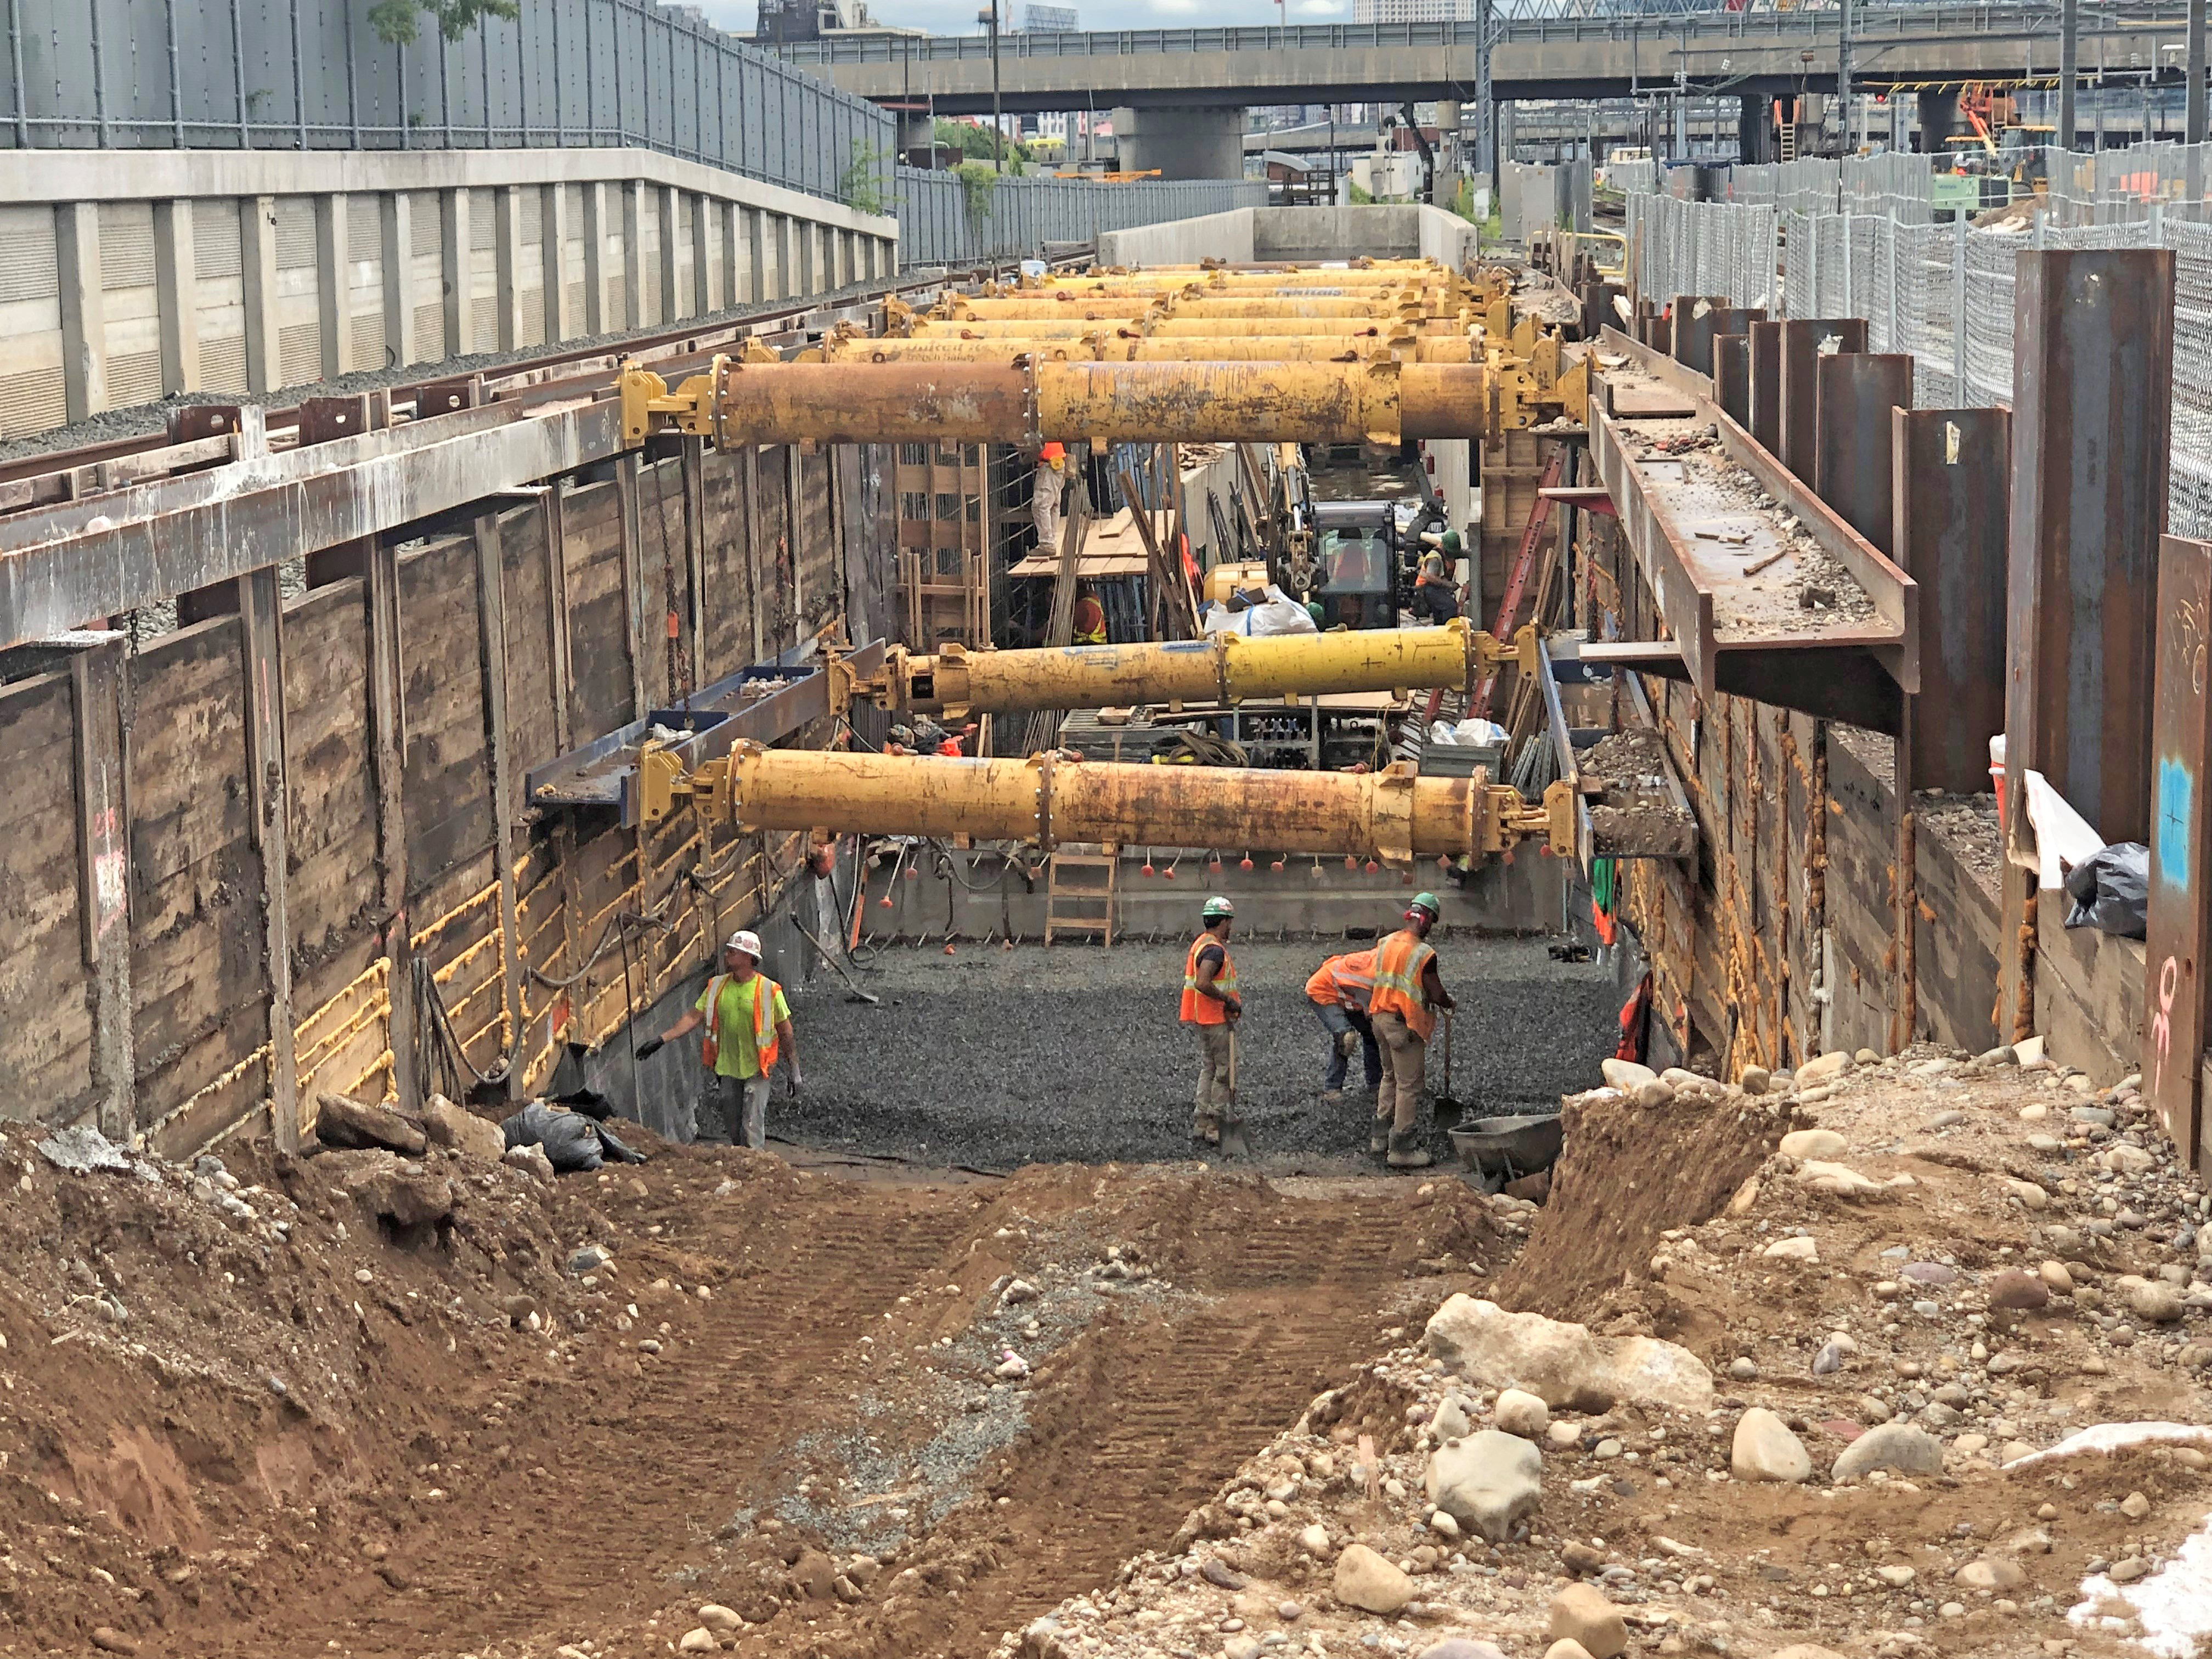 East Side Access - 07-26-19